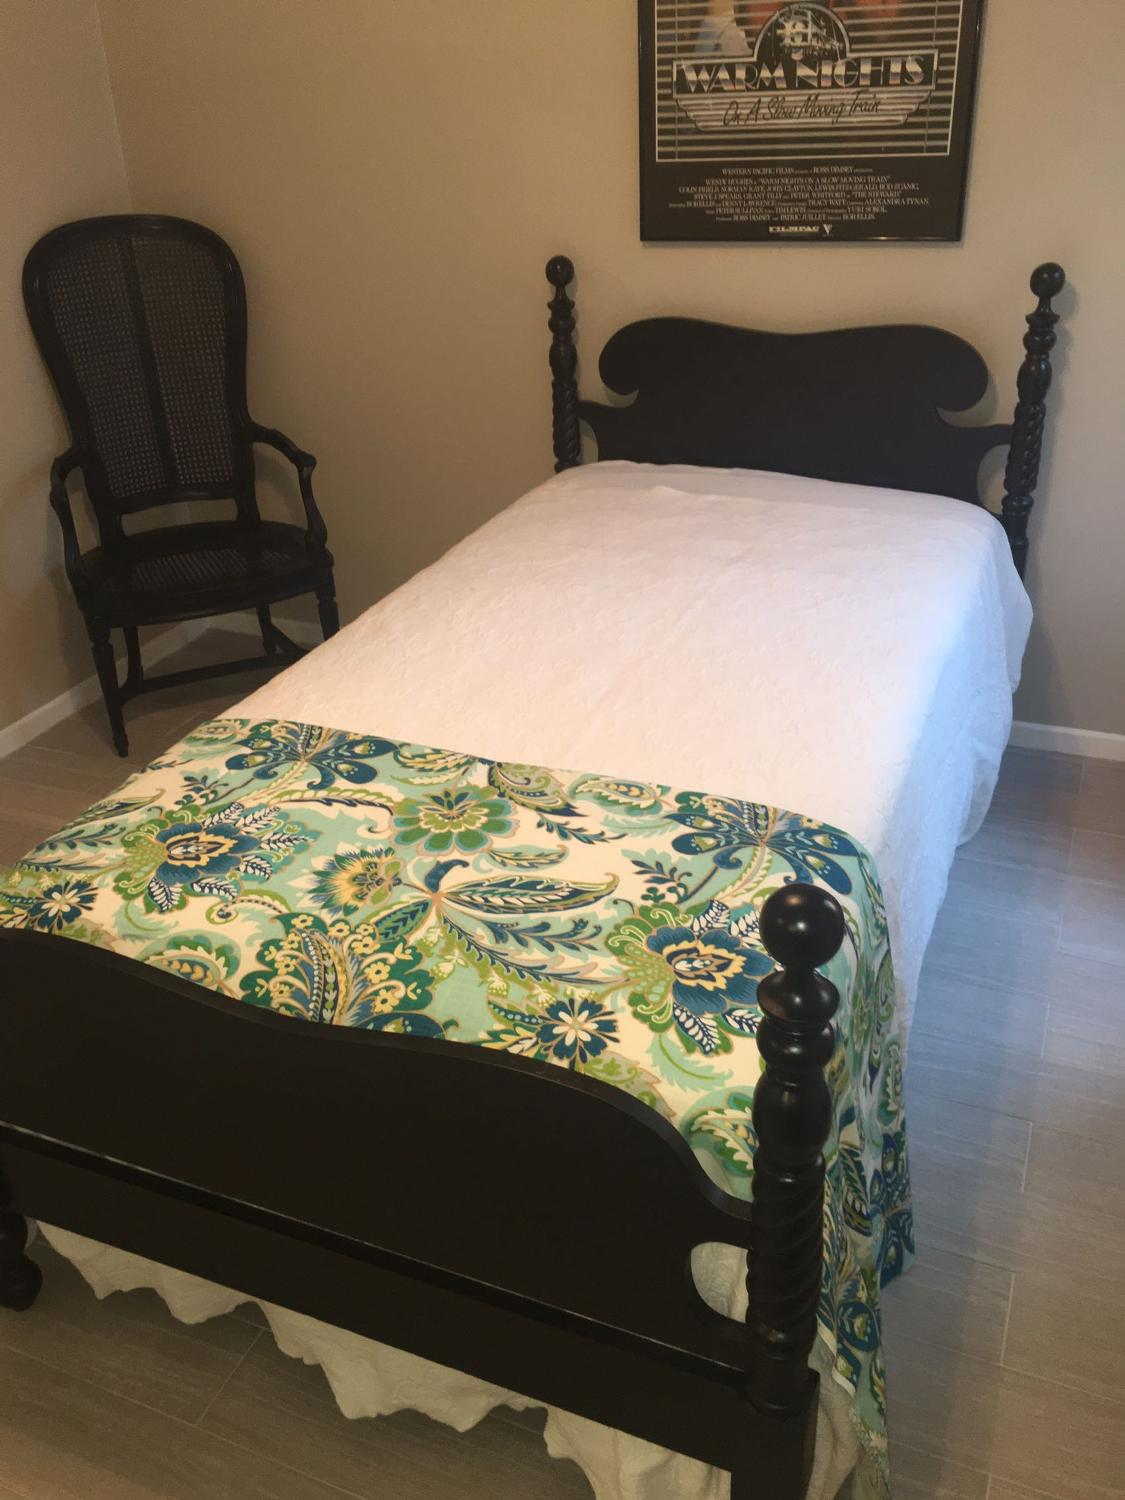 Find More Black Barley Twist Twin Bed With Mattress For Sale At Up To 90 Off Baton Rouge La